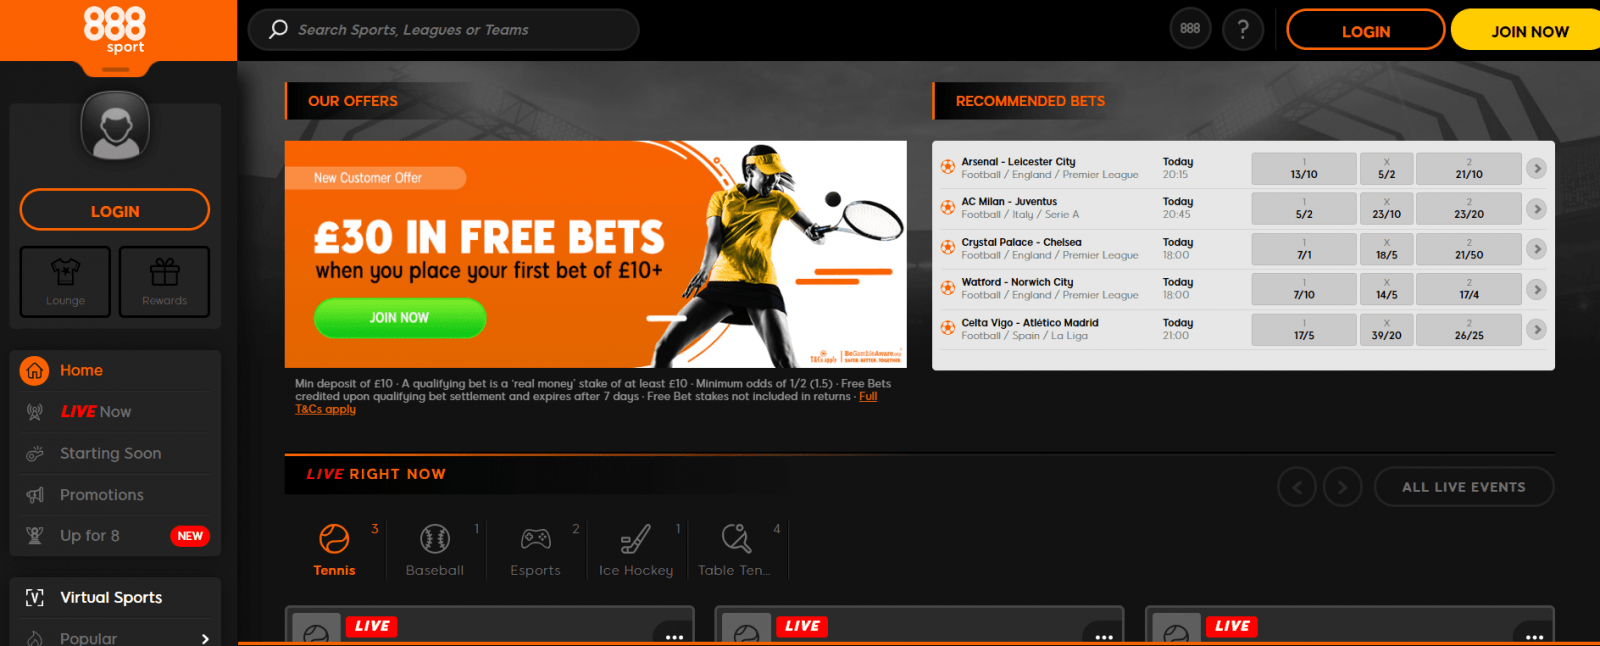 betting sites - 888Sport betting site